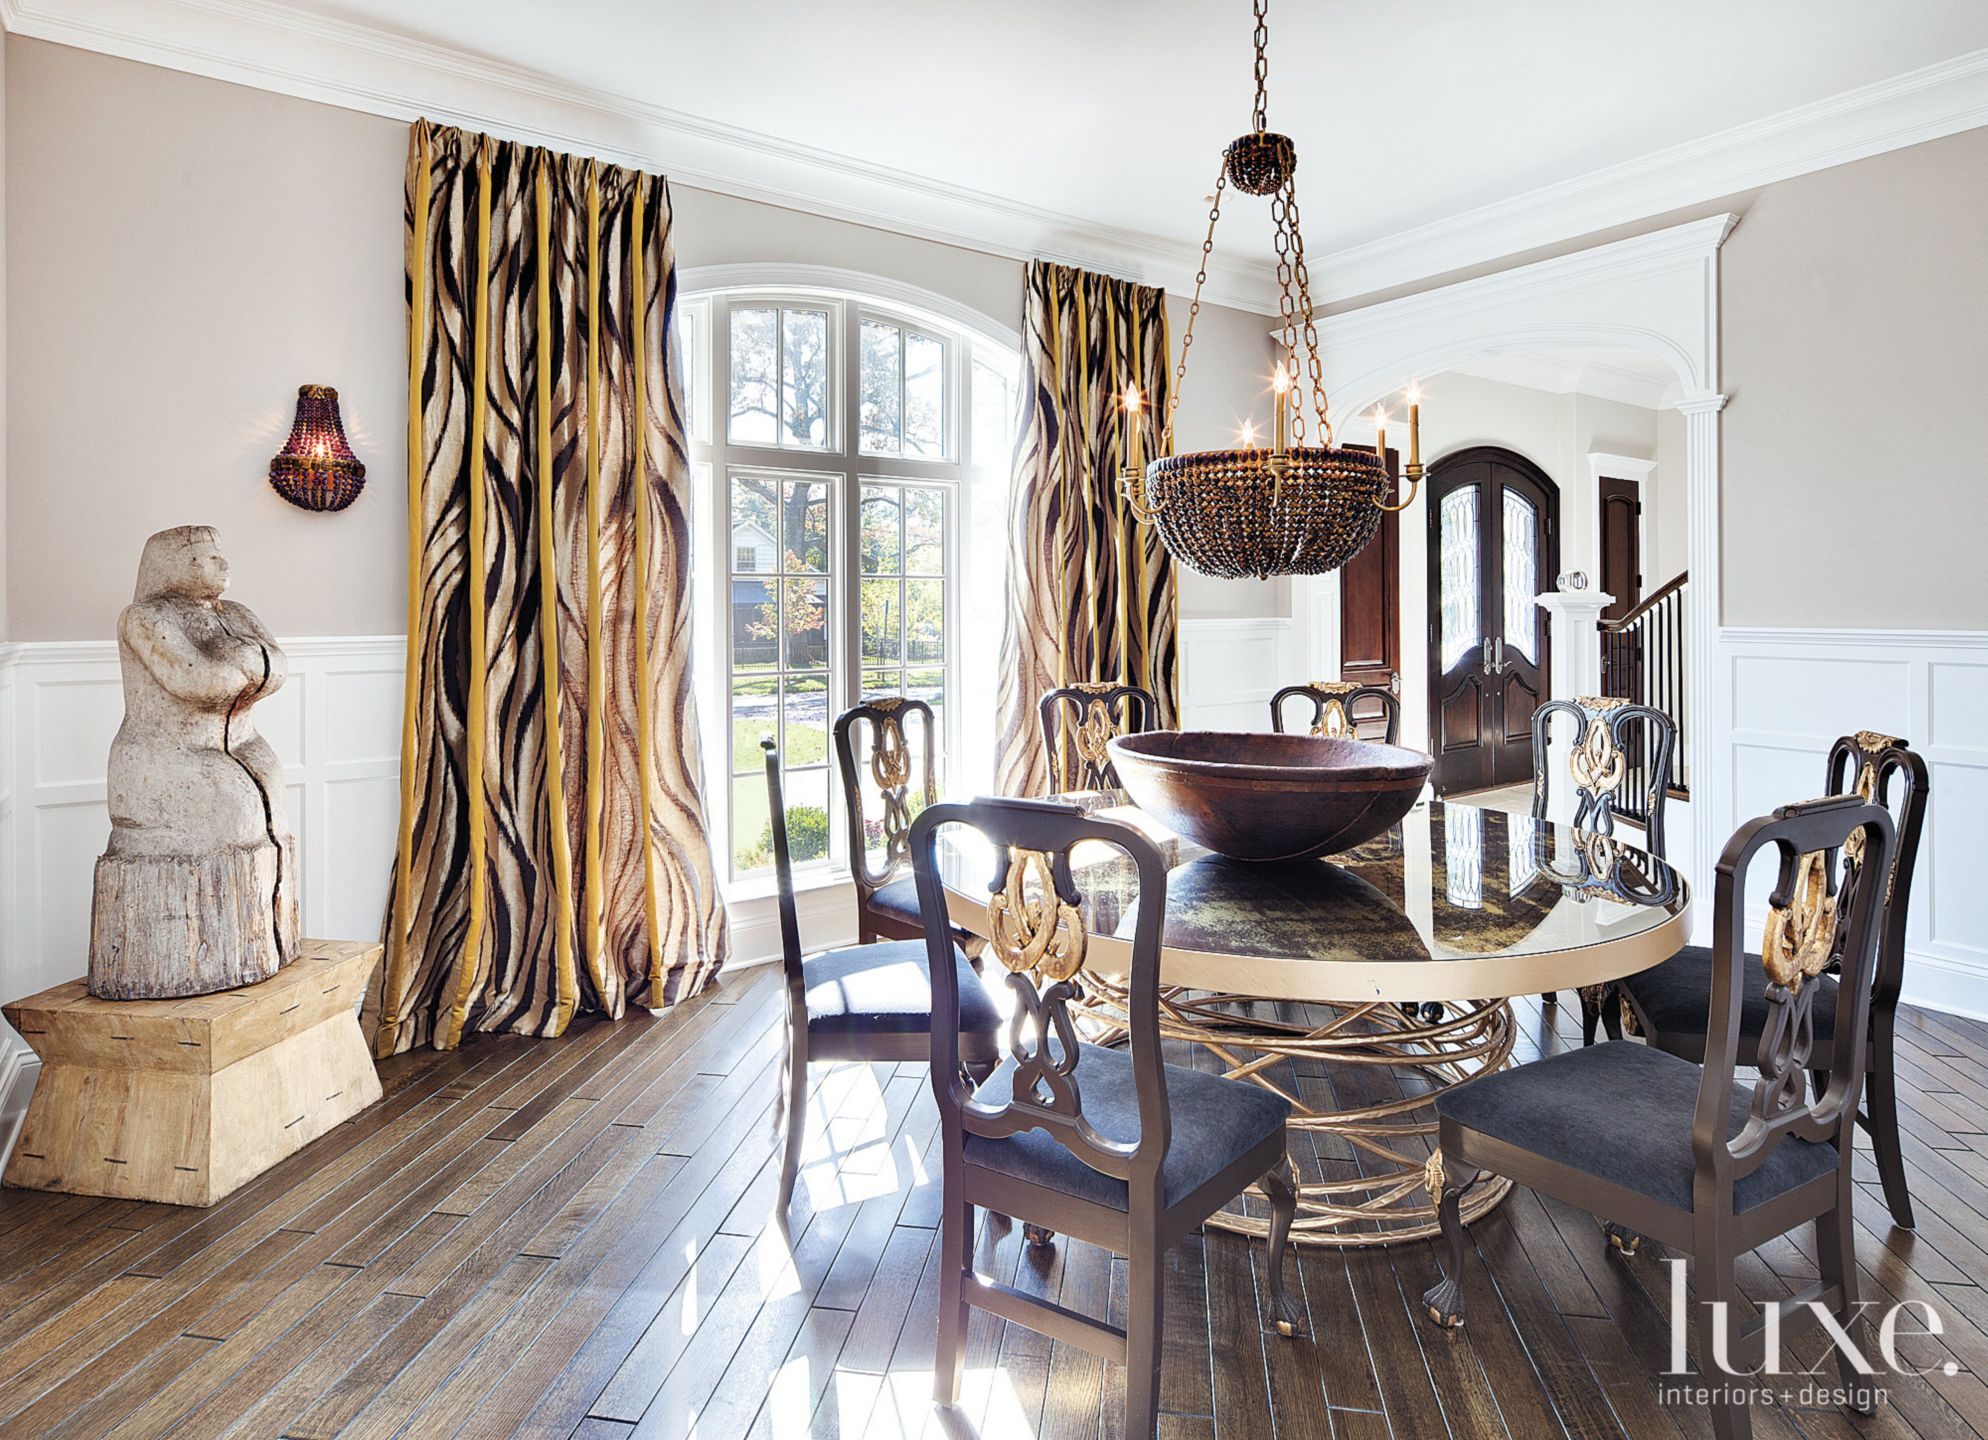 Contemporary Beige Dining Room with Primitive Sculpture